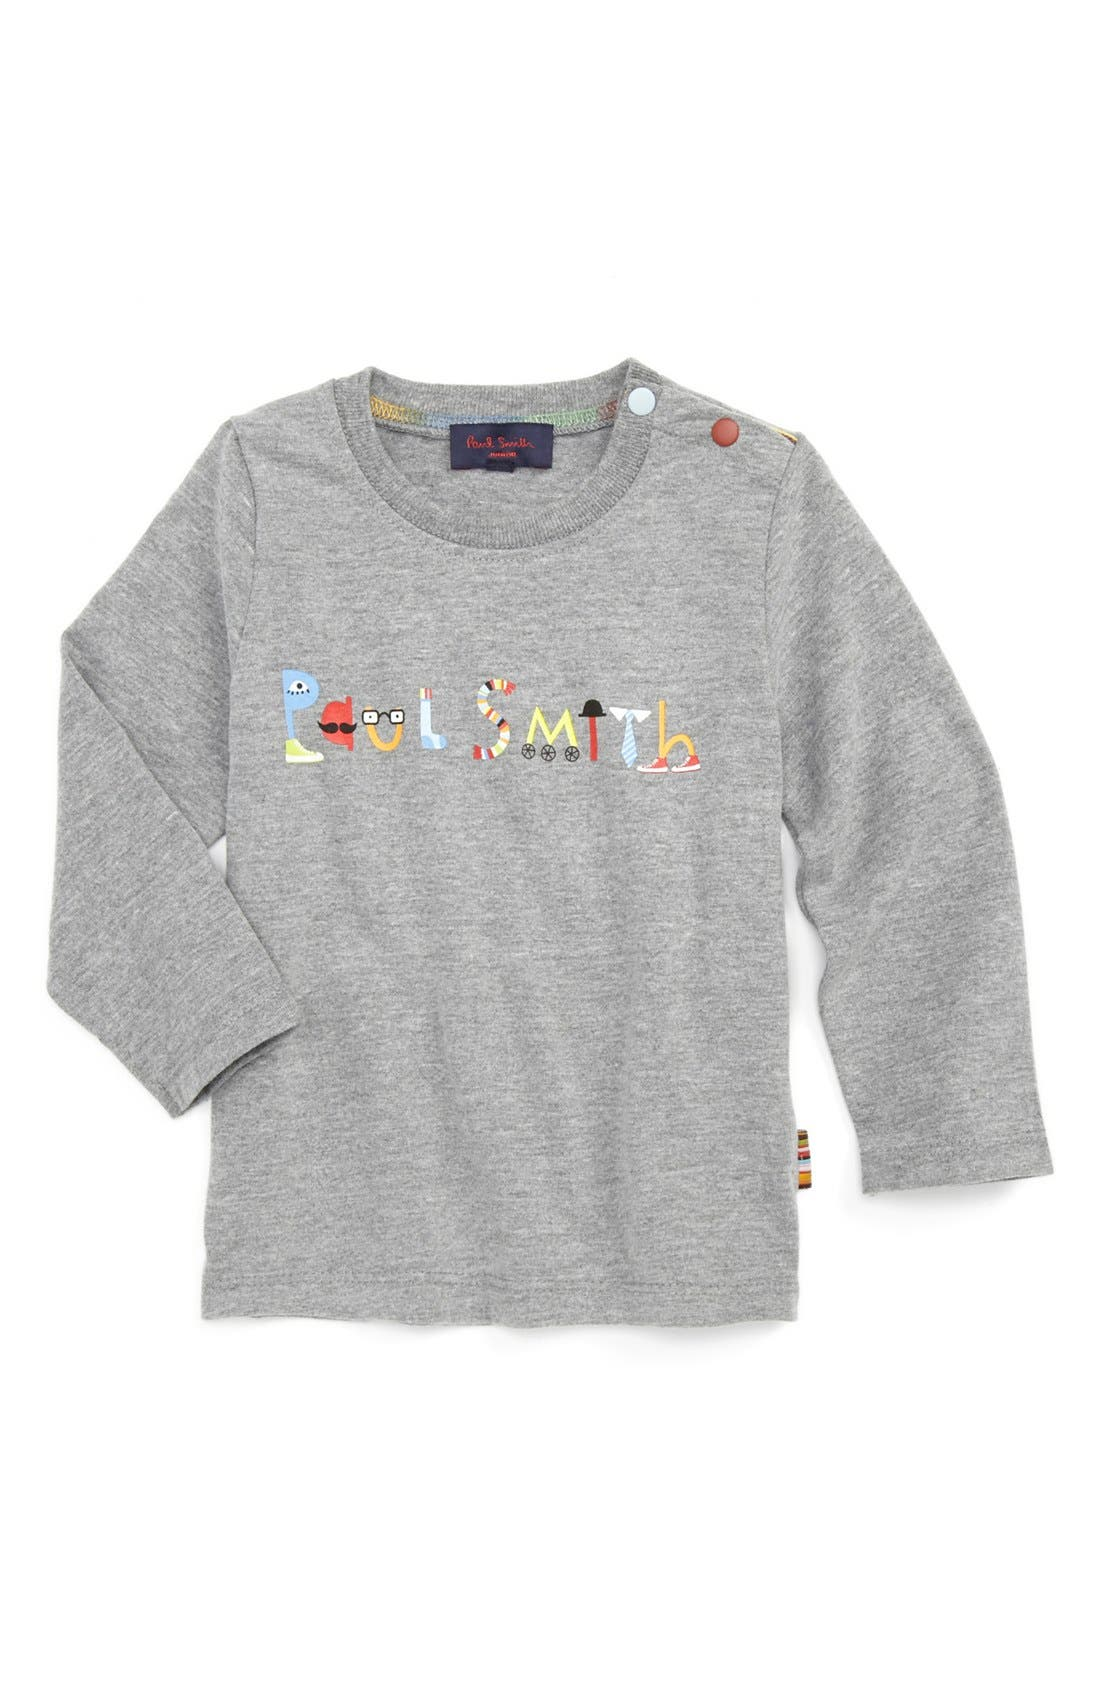 Main Image - Paul Smith Junior 'Elio' T-Shirt (Baby)